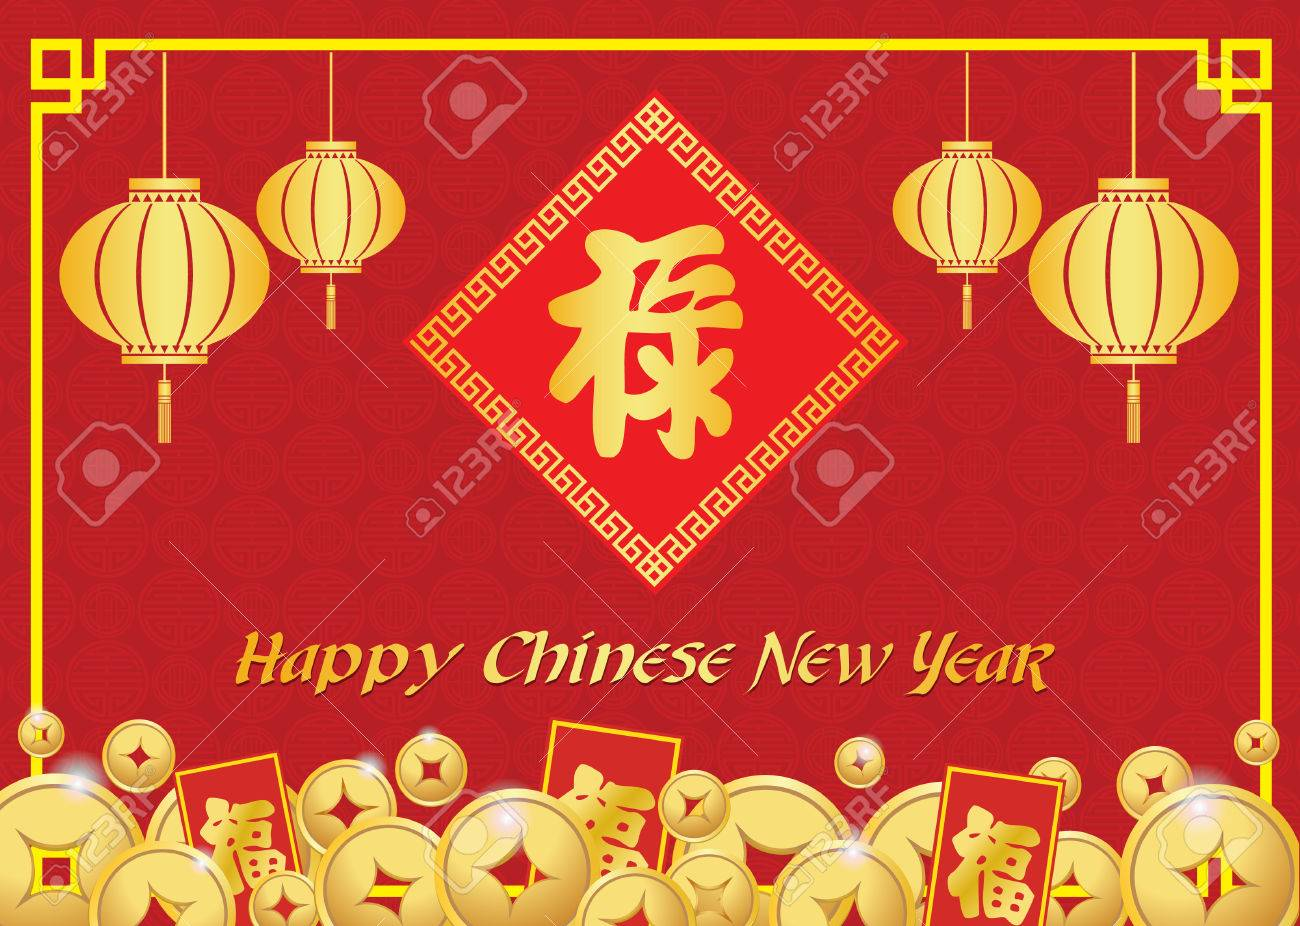 Happy chinese new year card is lanterns gold coins money reward happy chinese new year card is lanterns gold coins money reward and chiness word kristyandbryce Choice Image